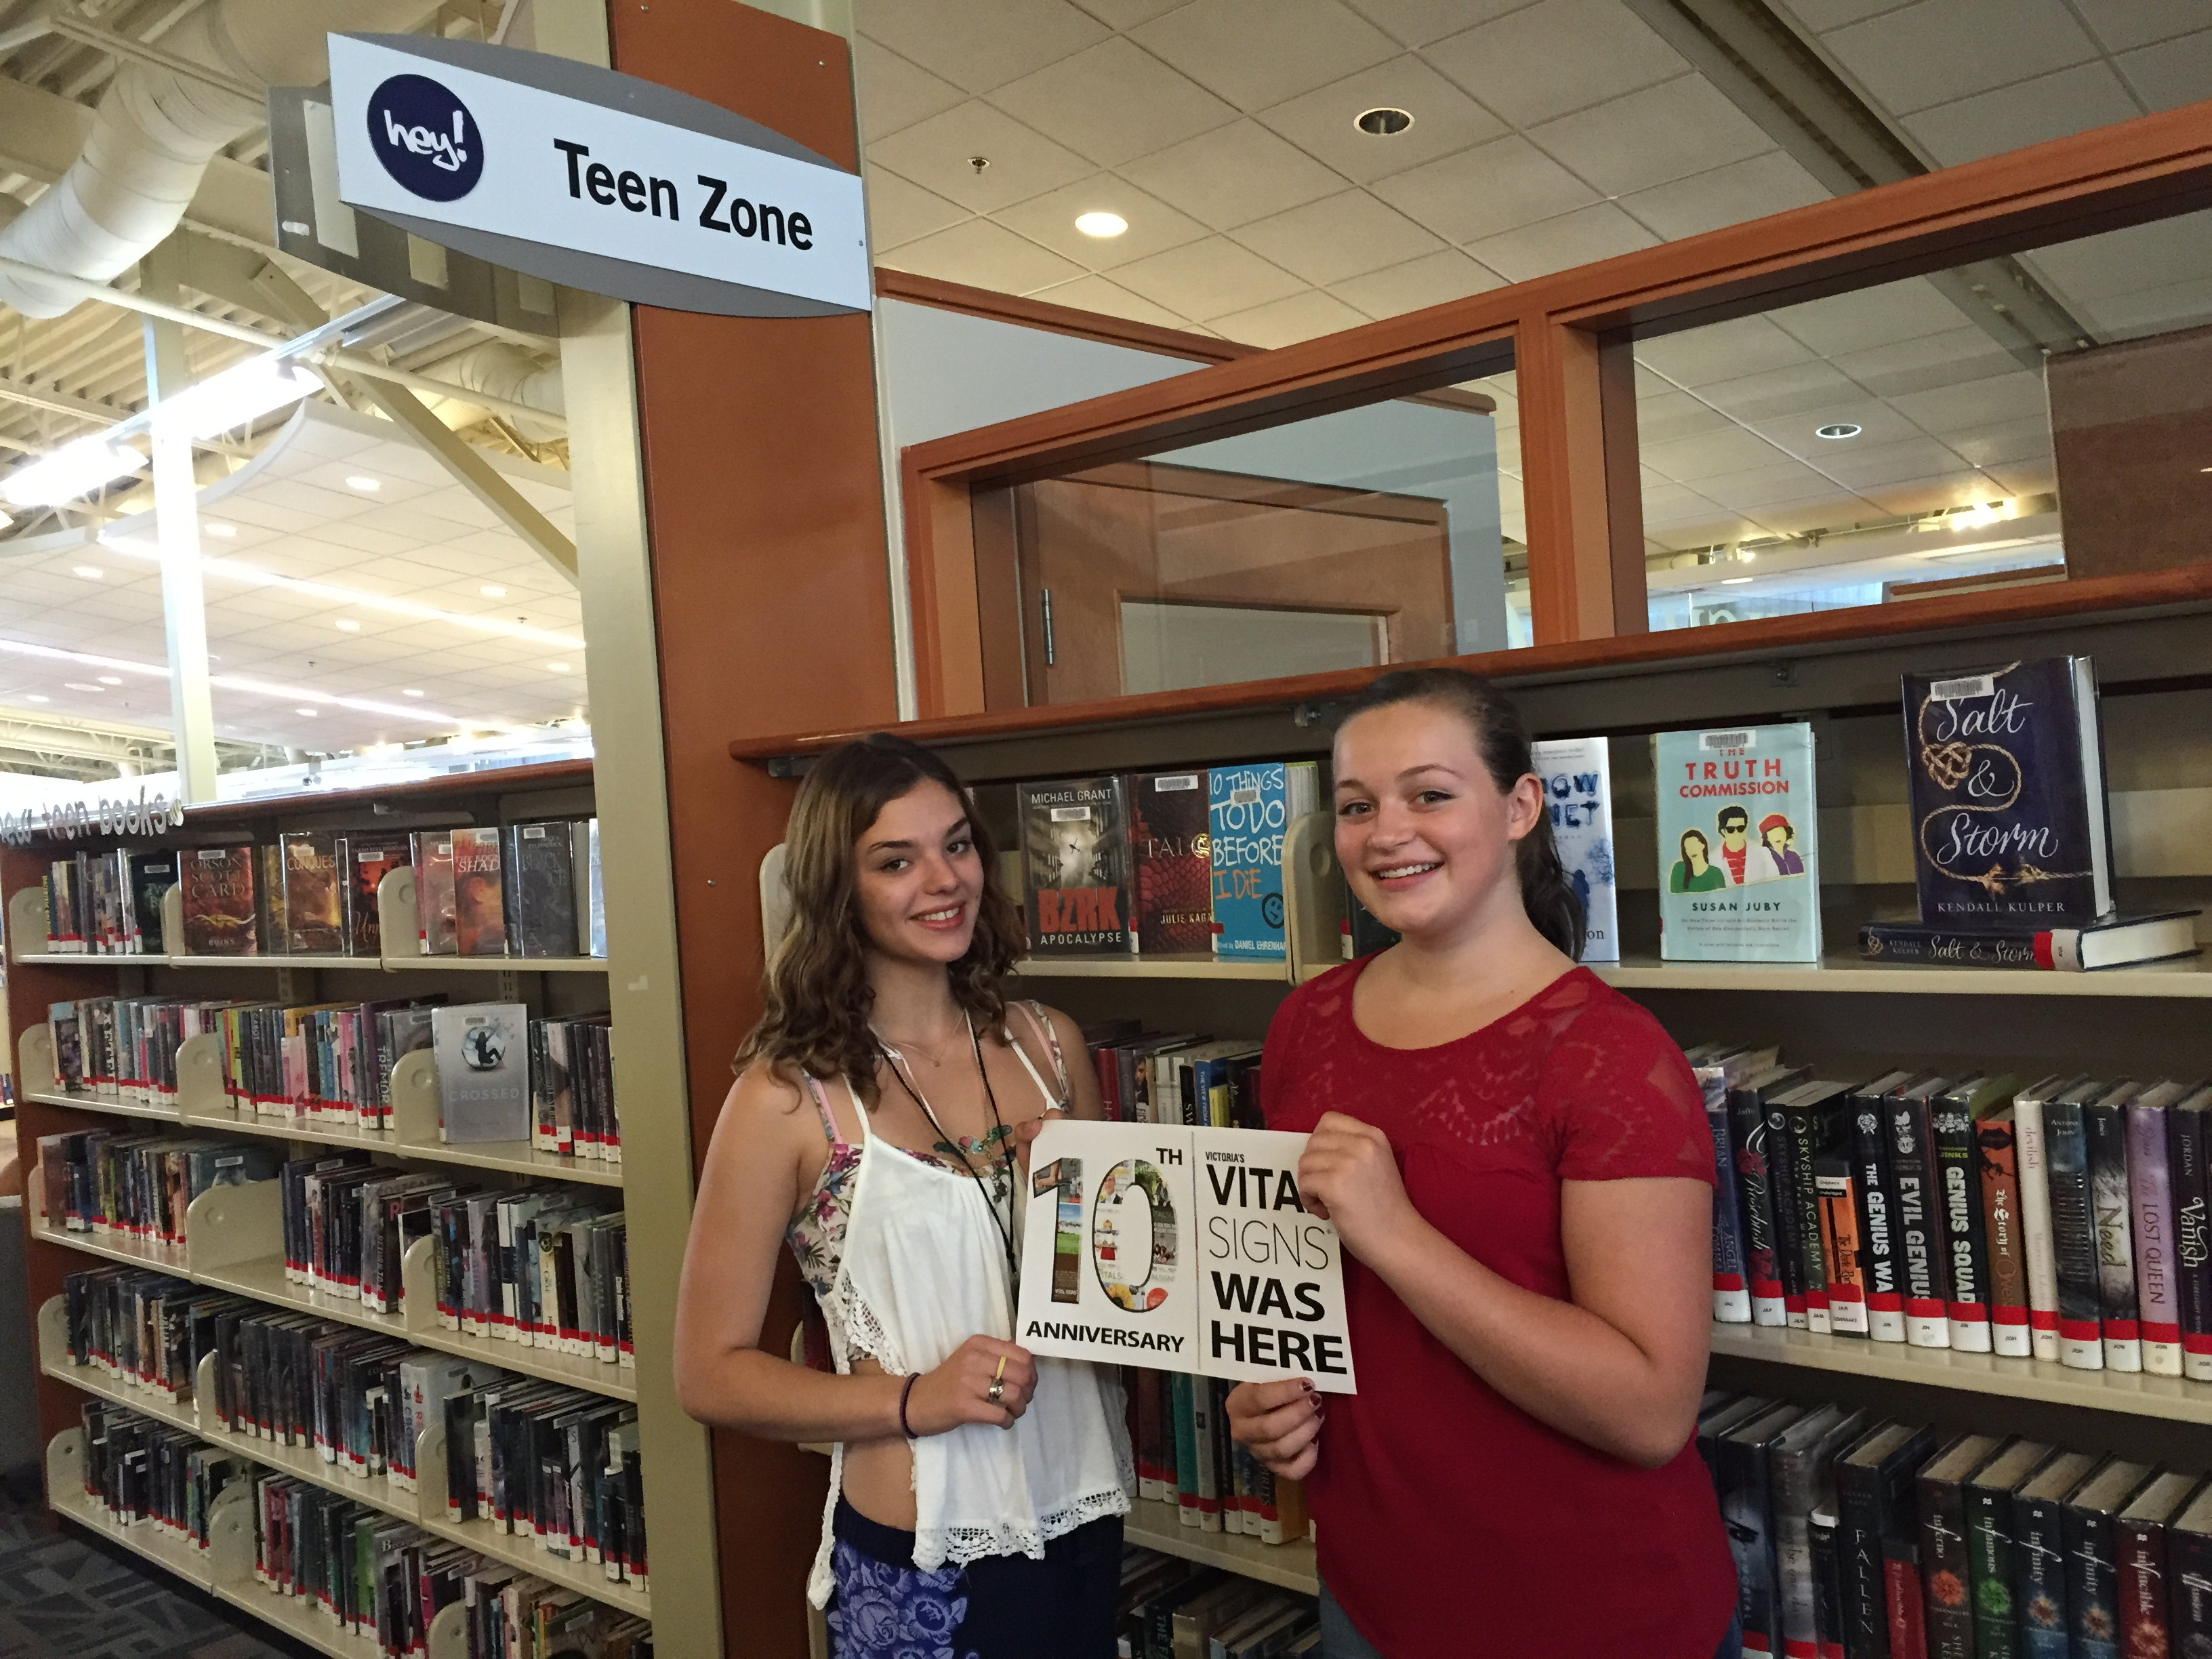 Greater Victoria Public Library Teen Zones